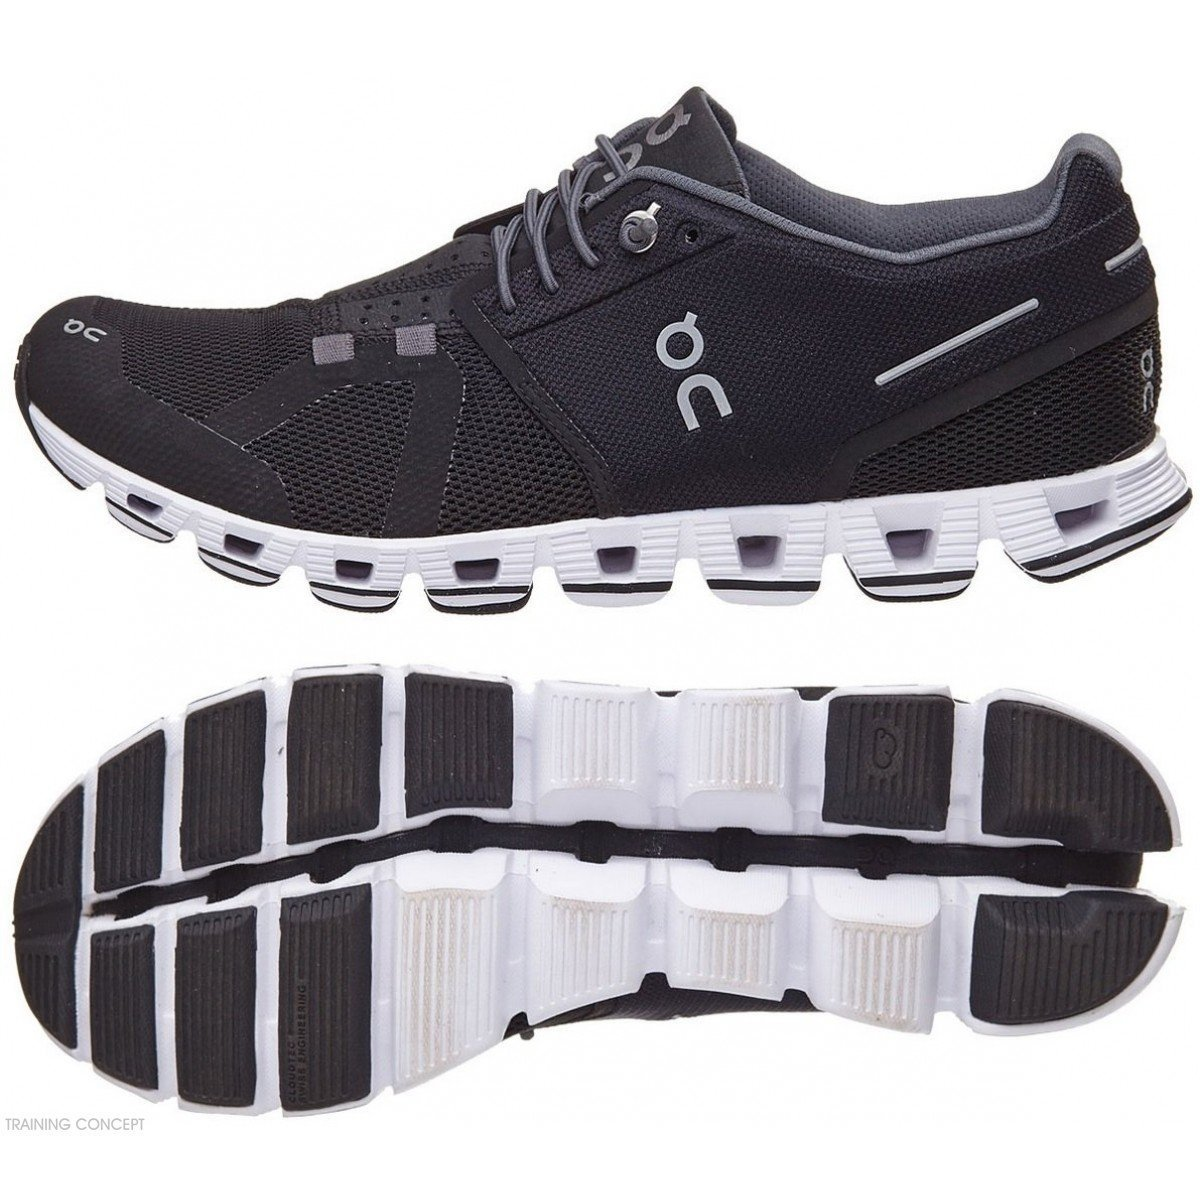 Running De De Chaussure De On Running Chaussure Running Cloud Chaussure On Cloud 7yfbvgY6